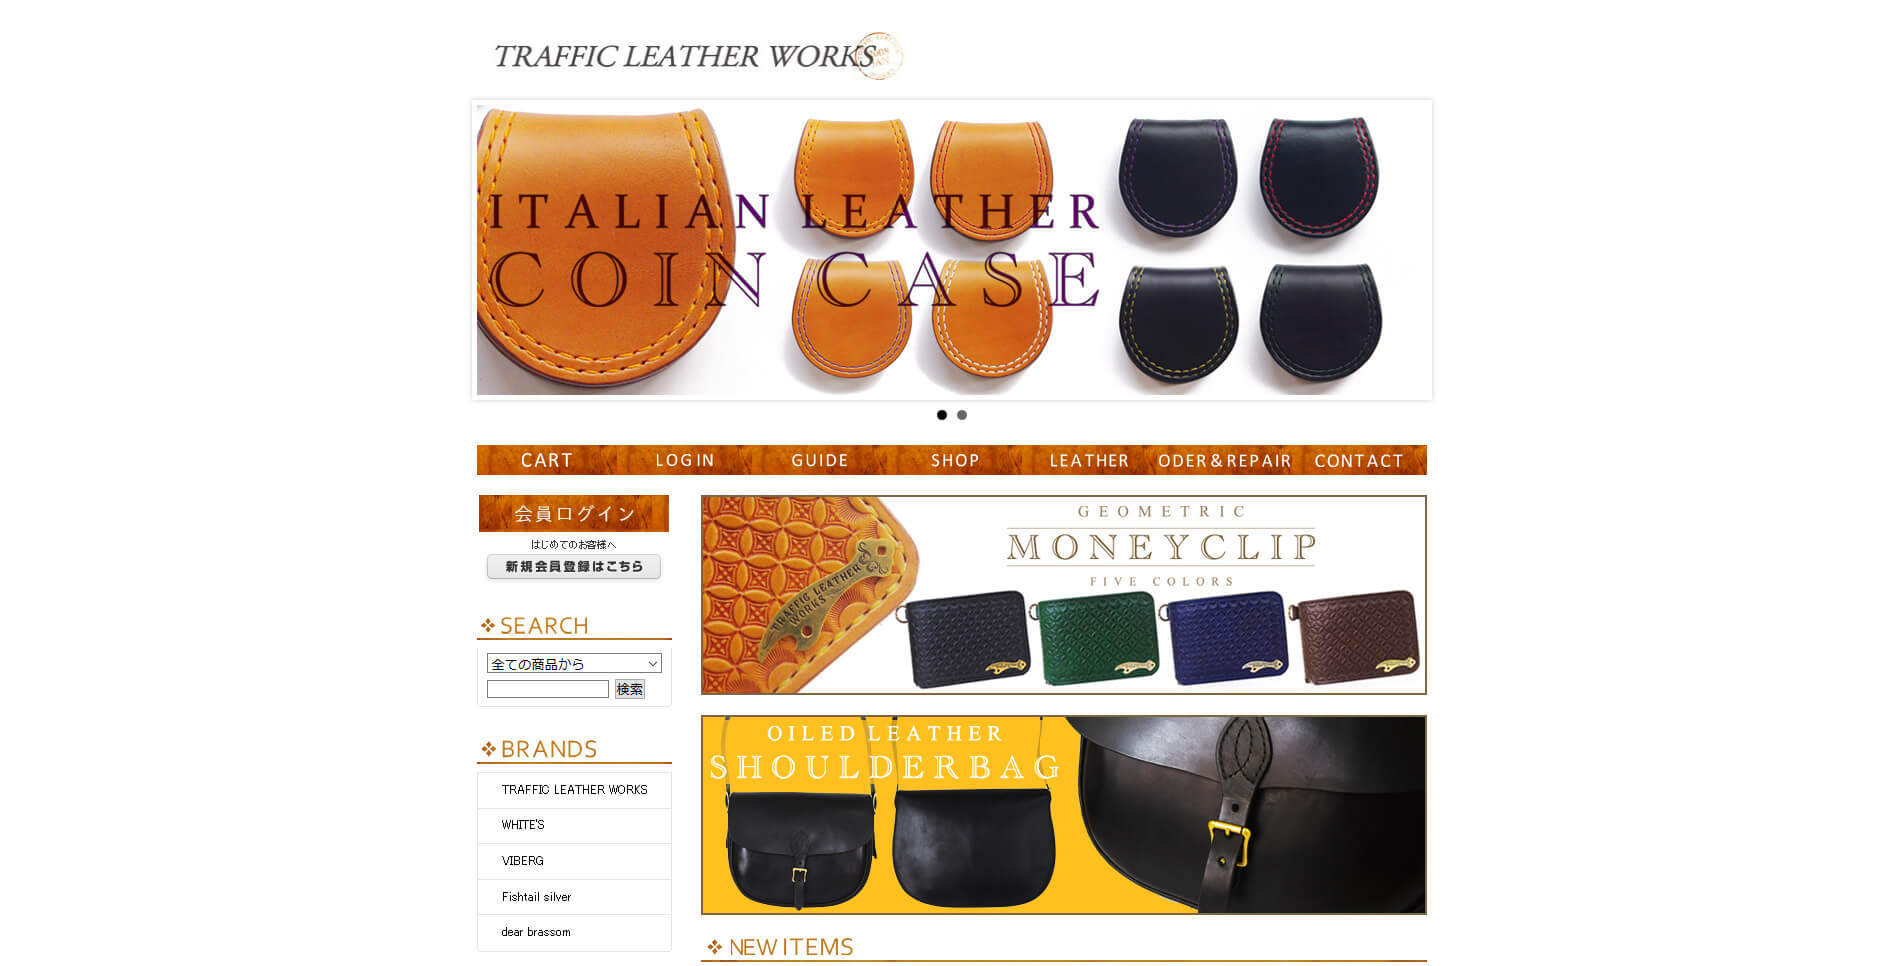 TRAFFIC LEATHER WORKS